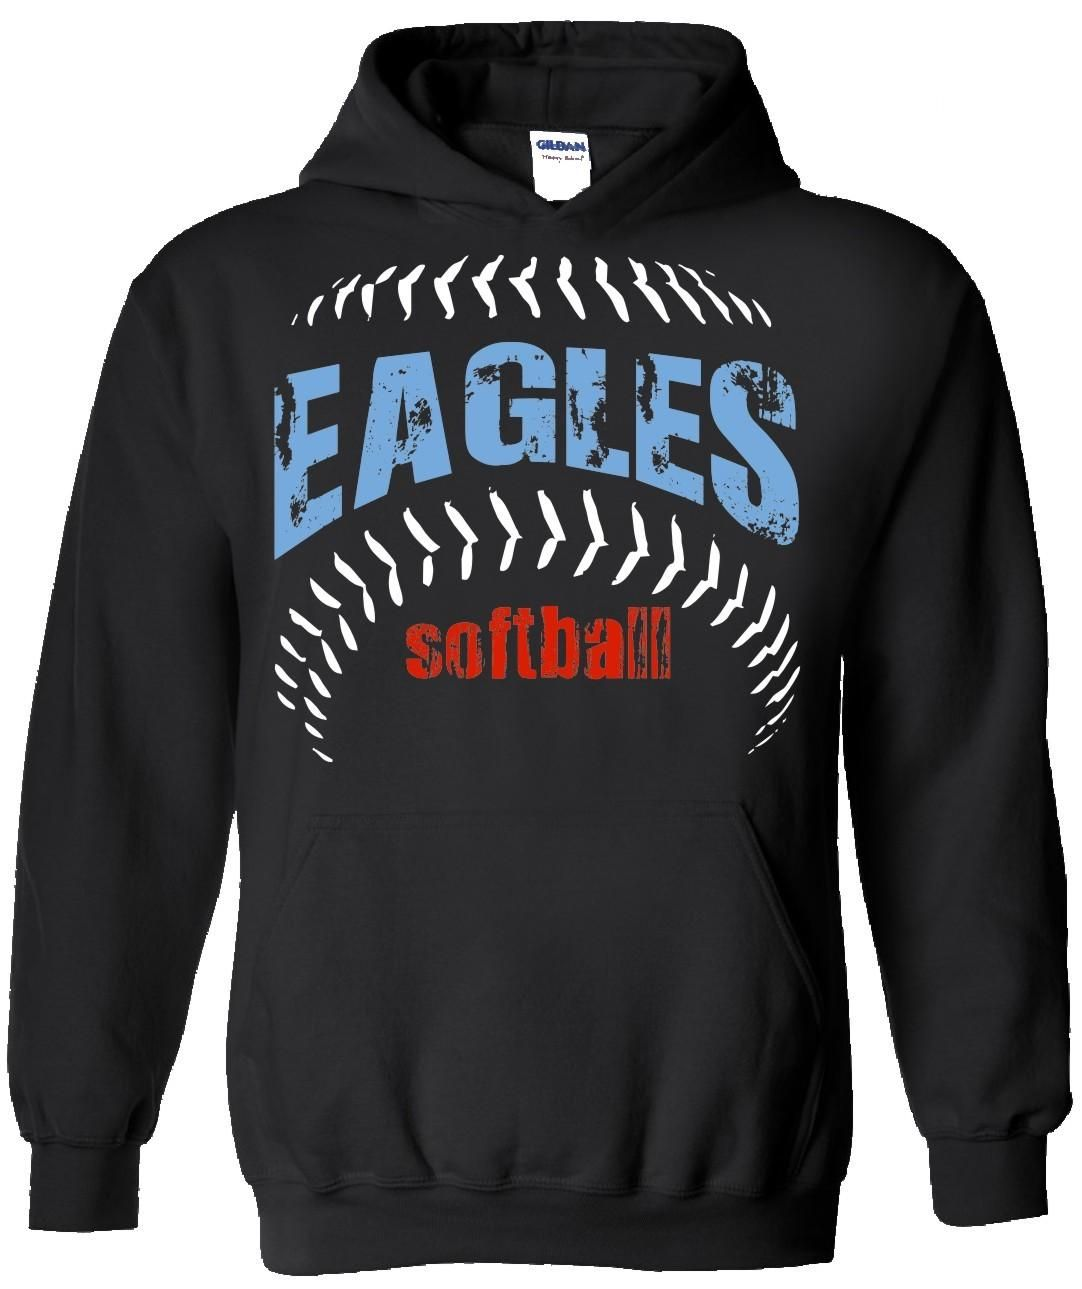 Shirt hoodie design - Eagles Spiritwear Hoodie Design School Spiritwear Shirts And Apparel Use Your Mascot Graphic Or